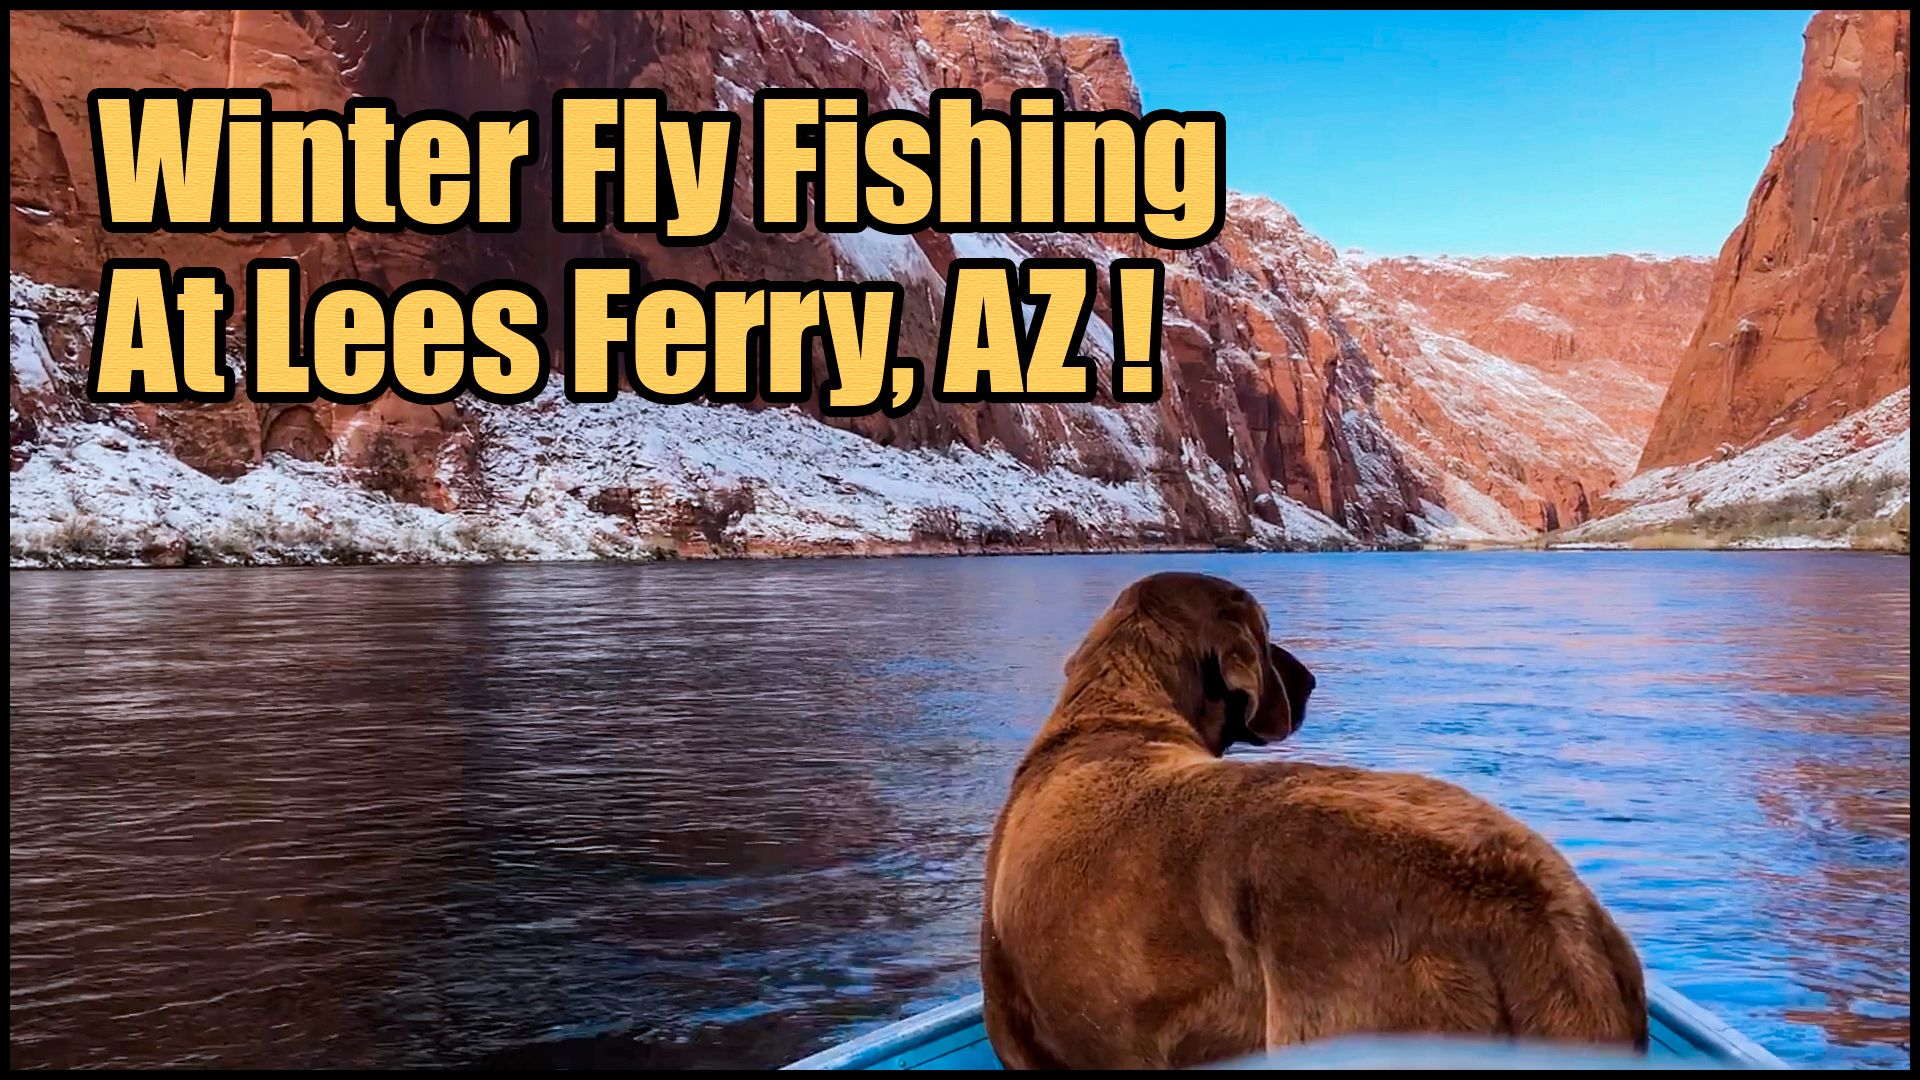 See video about Winter Fly Fishing for trout on Colorado